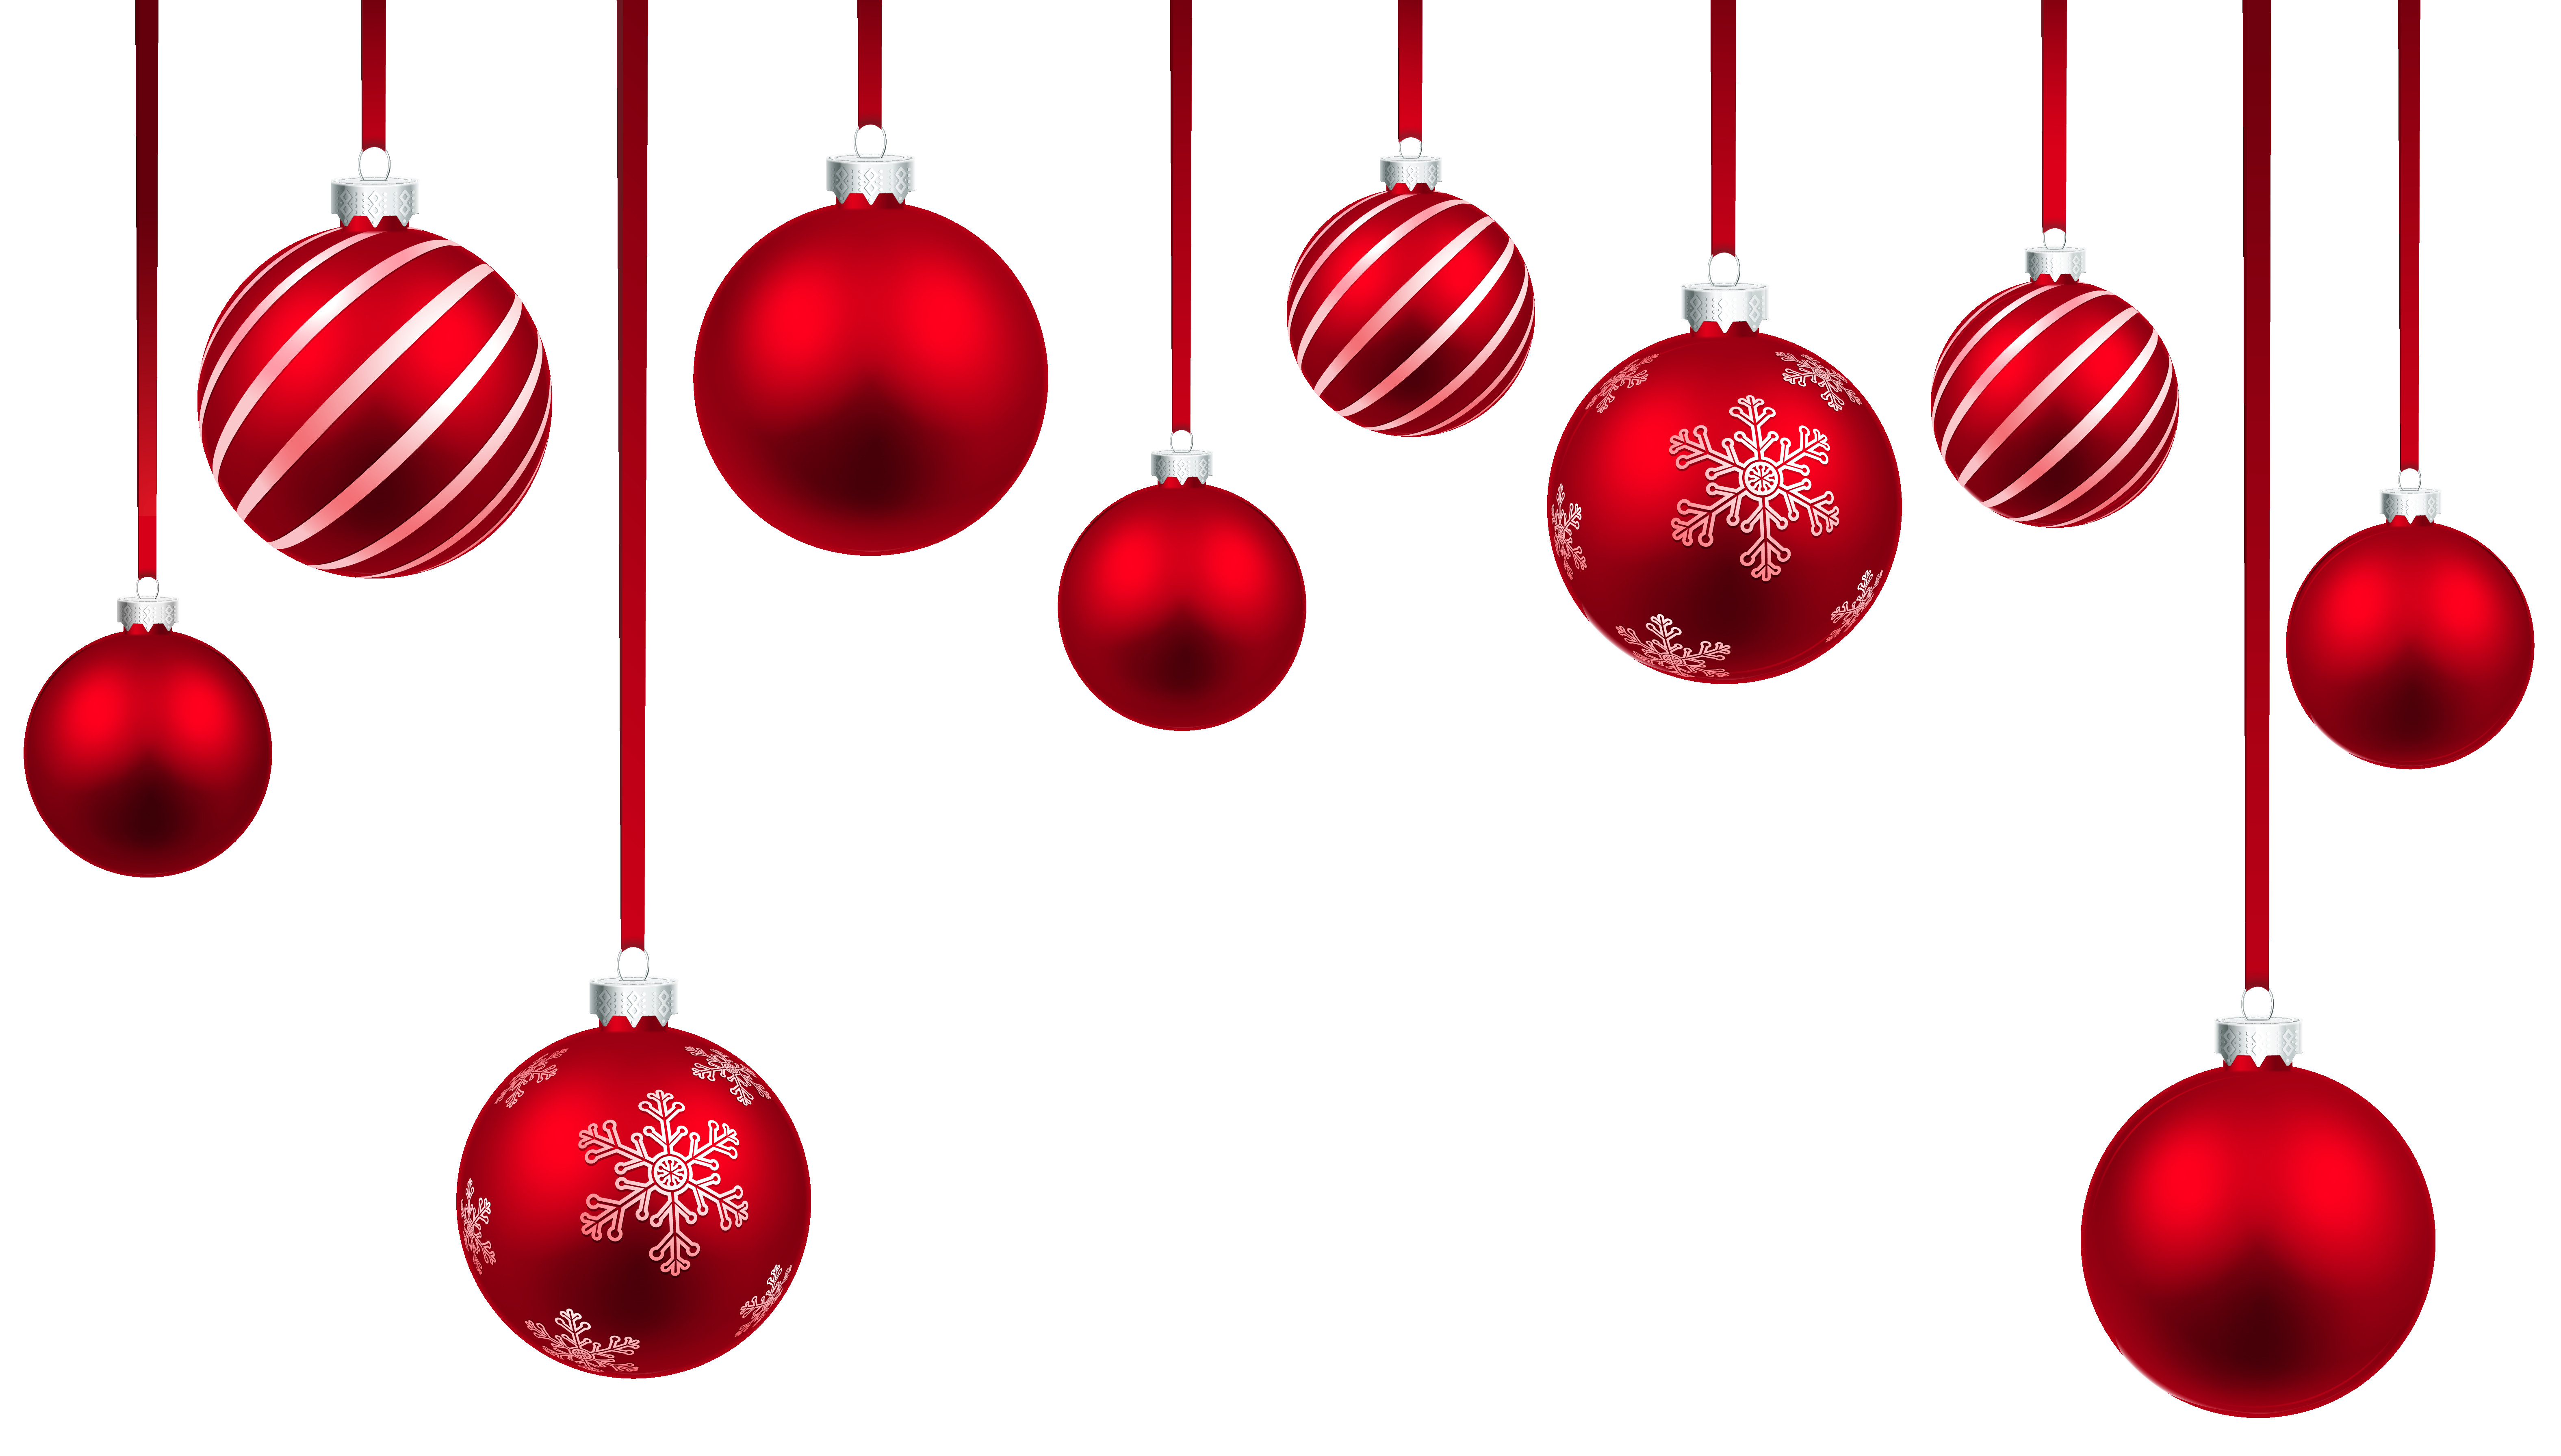 Red Christmas Balls Awesome Red Christmas Hanging Balls Decor Png Clipart Image Of Luxury 40 Pictures Red Christmas Balls